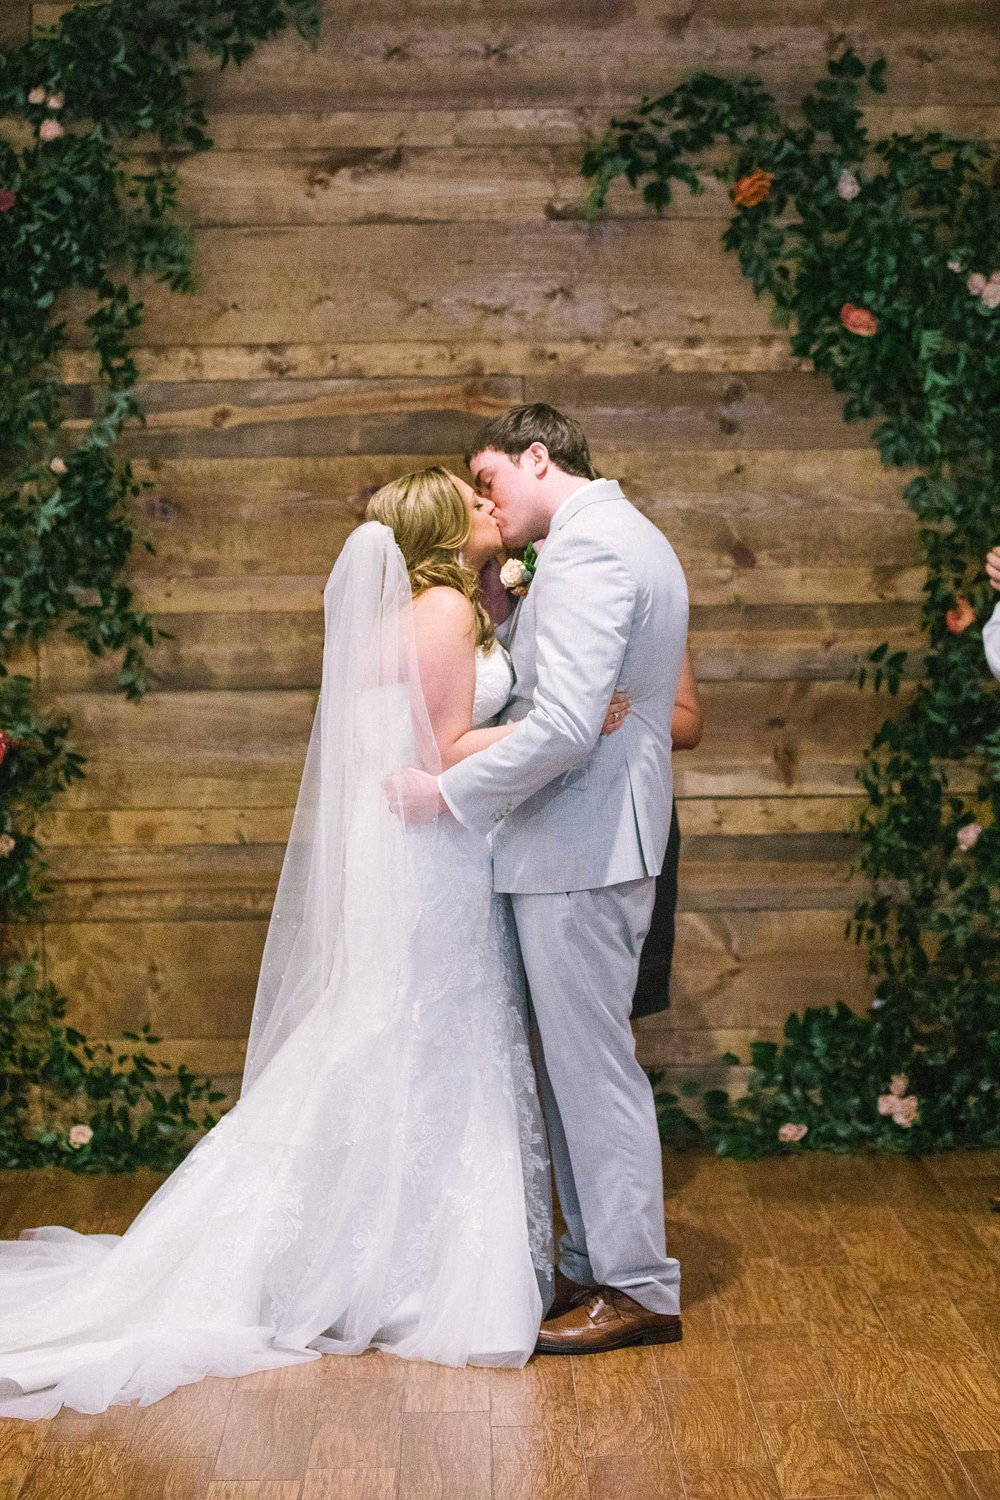 Bride and groom kissing infront of greenery archway against wood wall